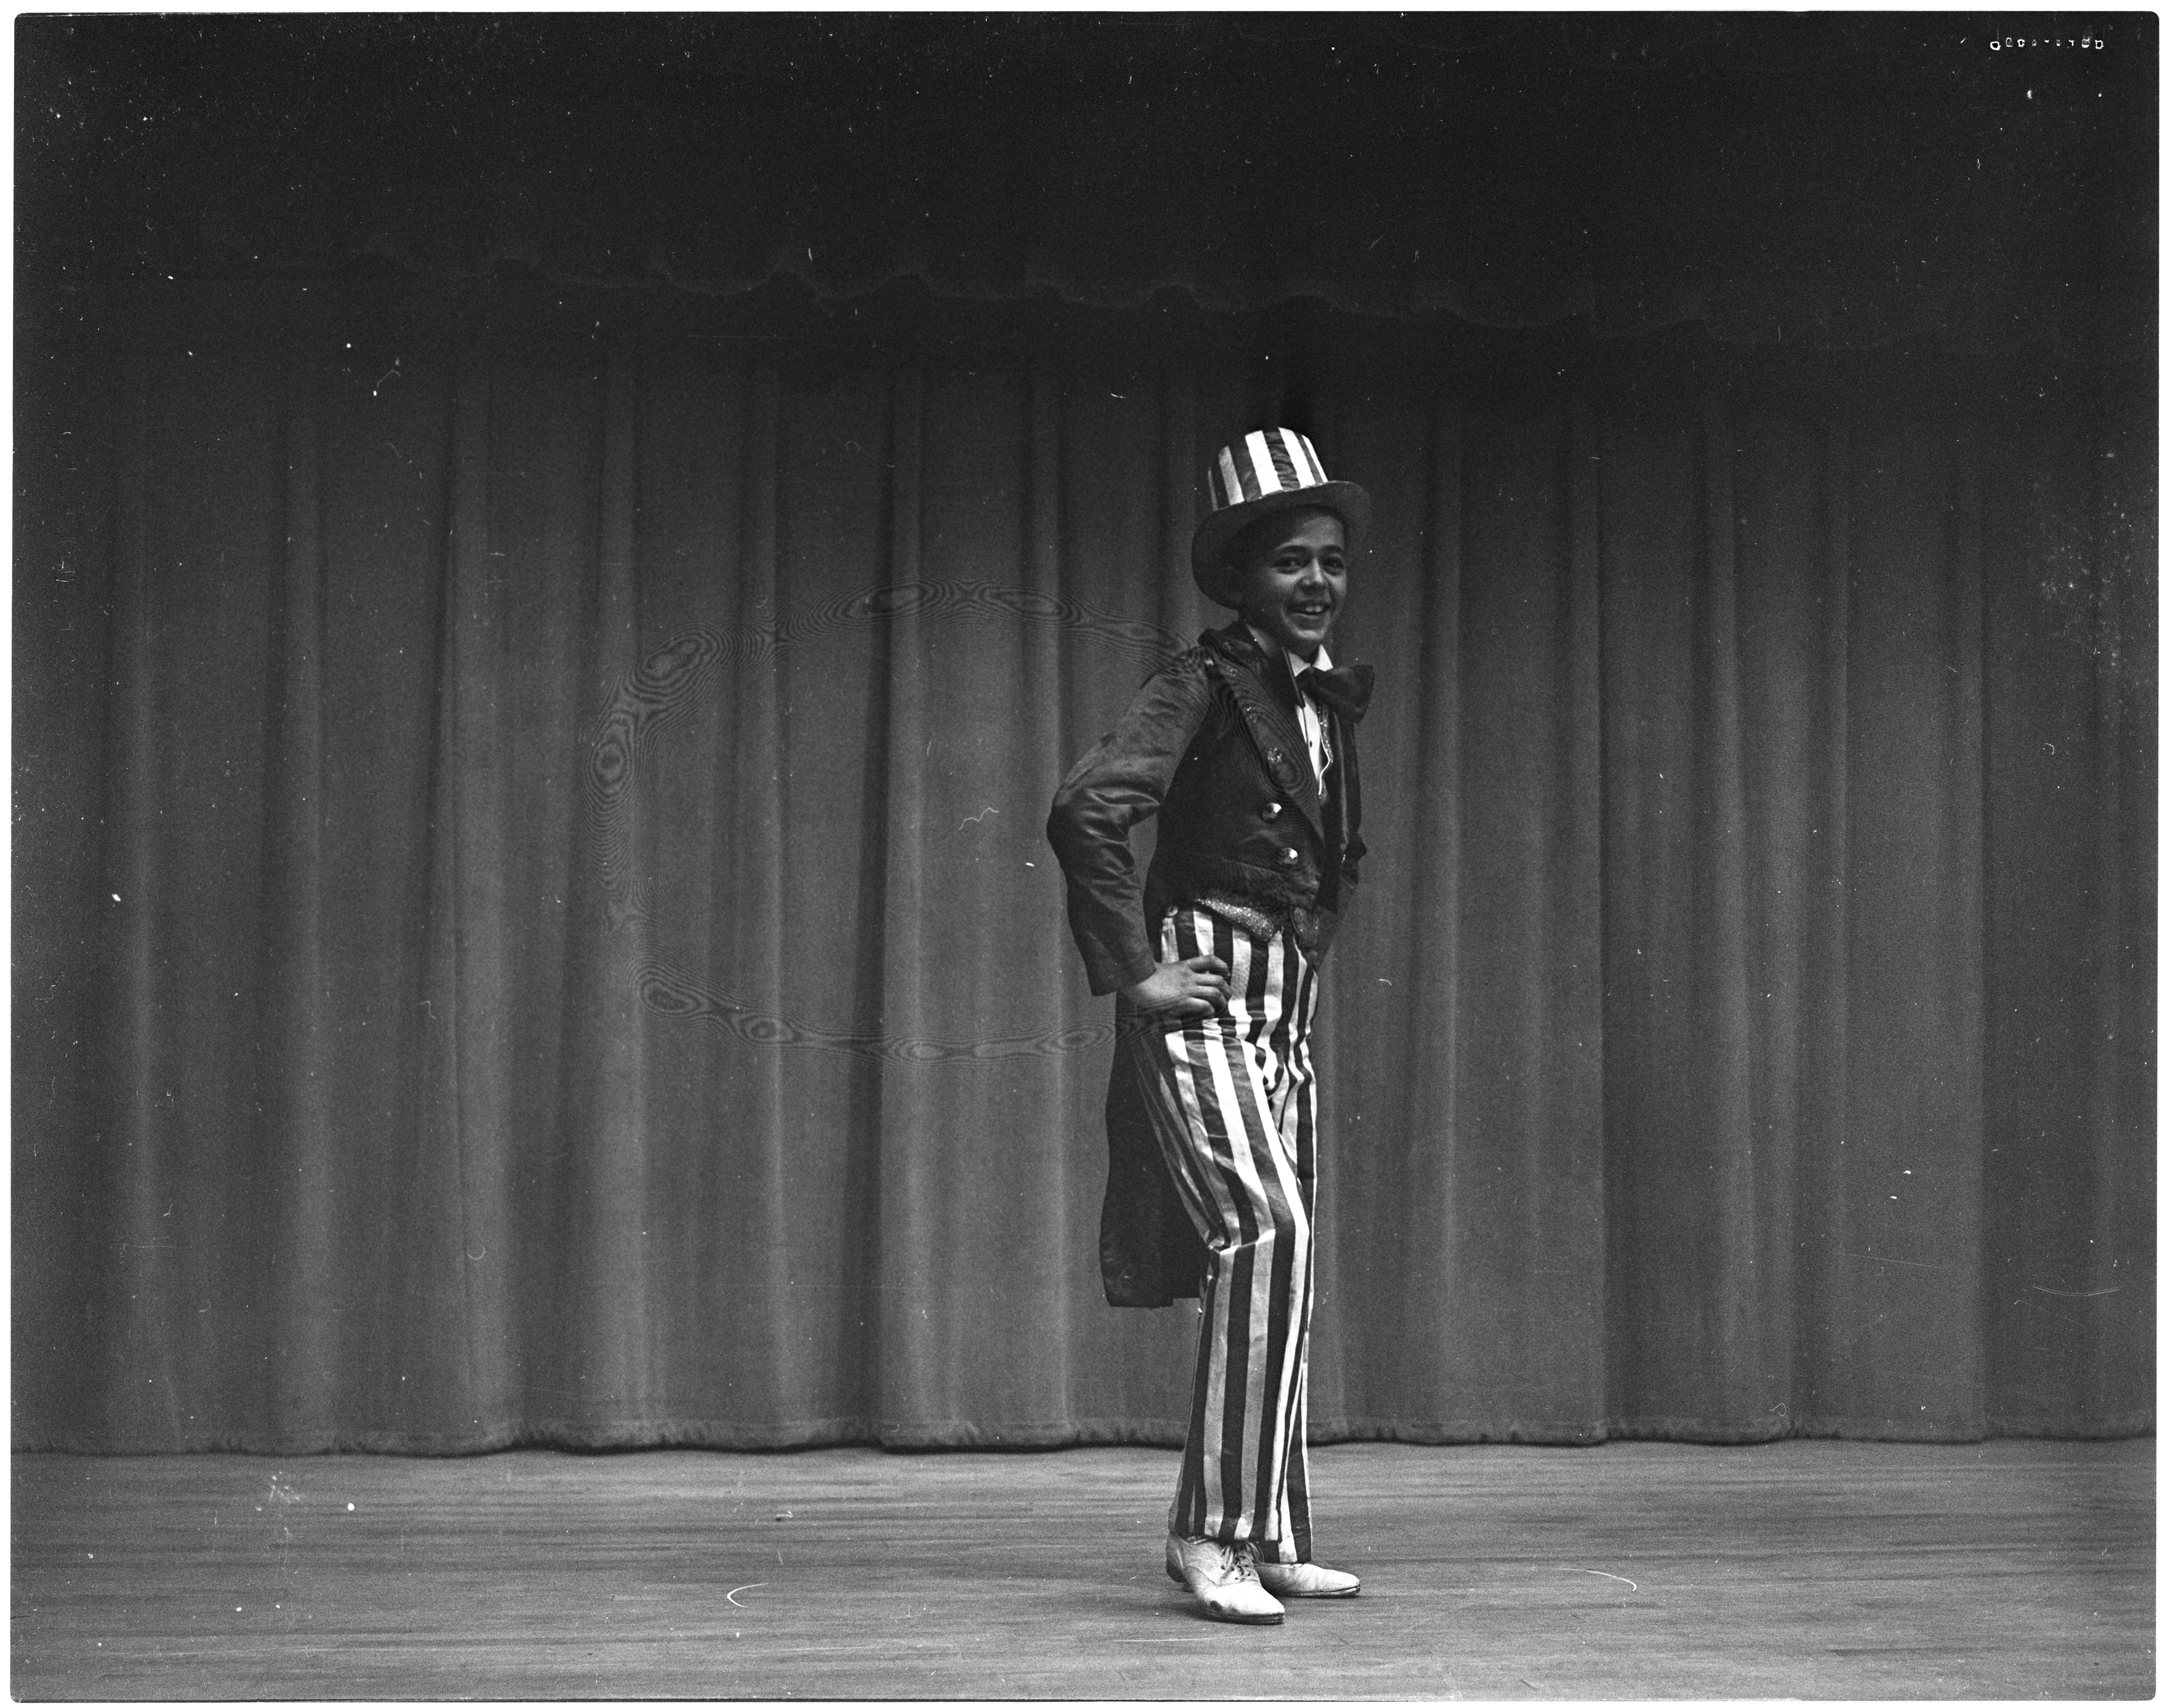 Dick Gaun Performing in Uncle Sam Costume image